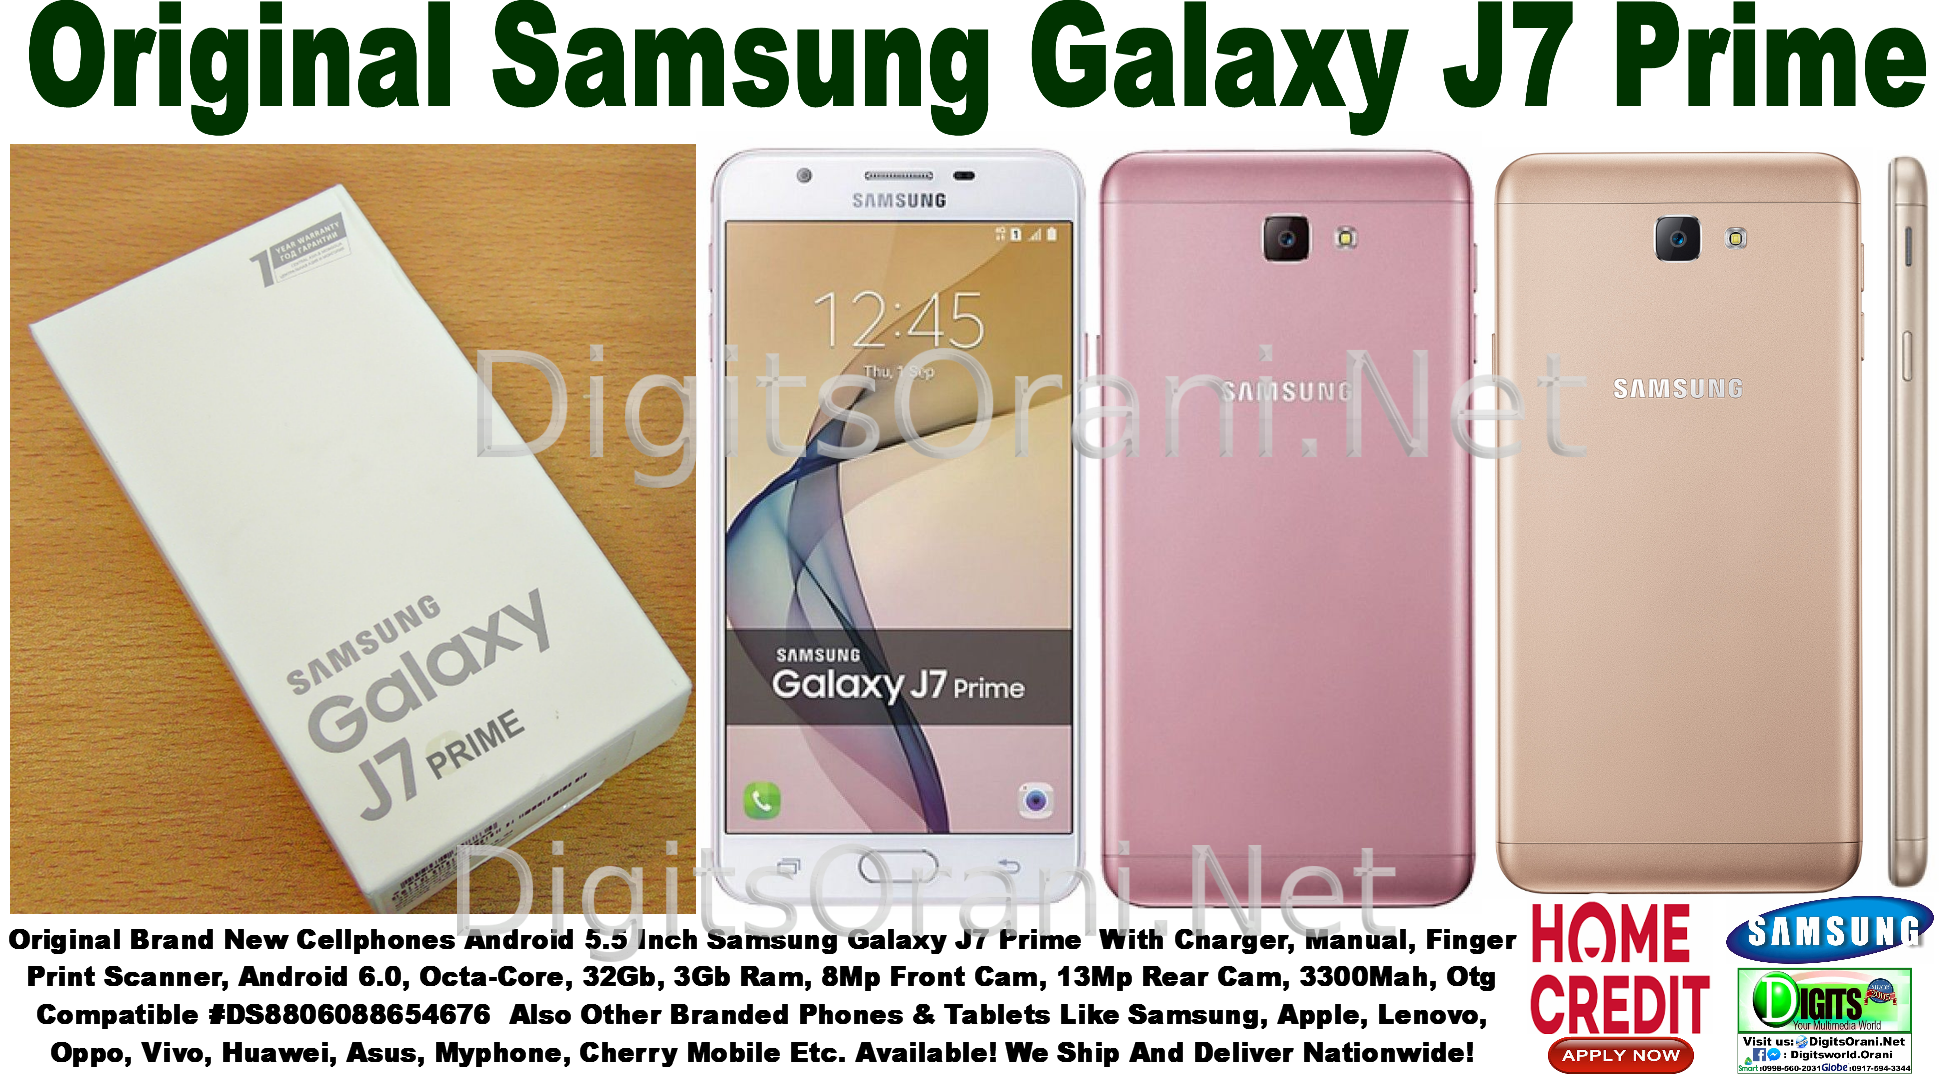 Original Android Samsung Galaxy J7 Prime With Charger Manual Touch To Zoom